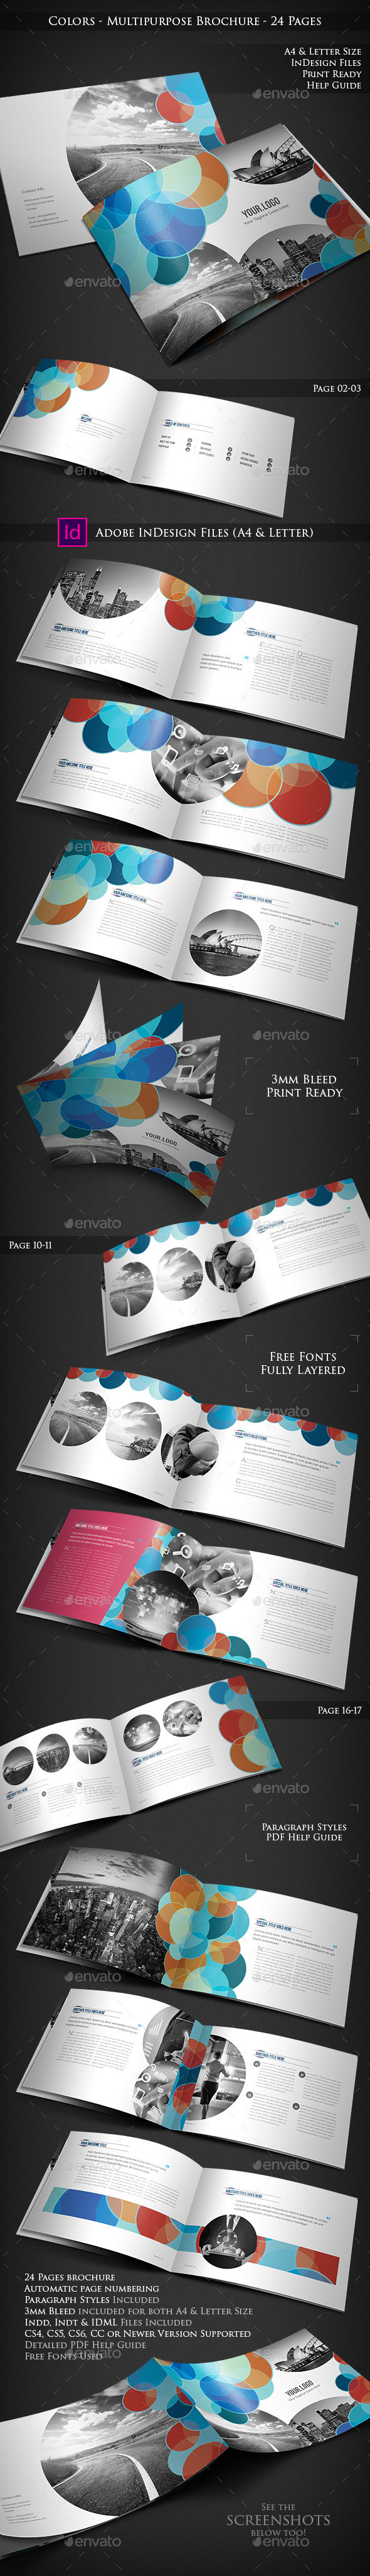 Colors - Multipurpose Brochure 24 Pages - Corporate Brochures